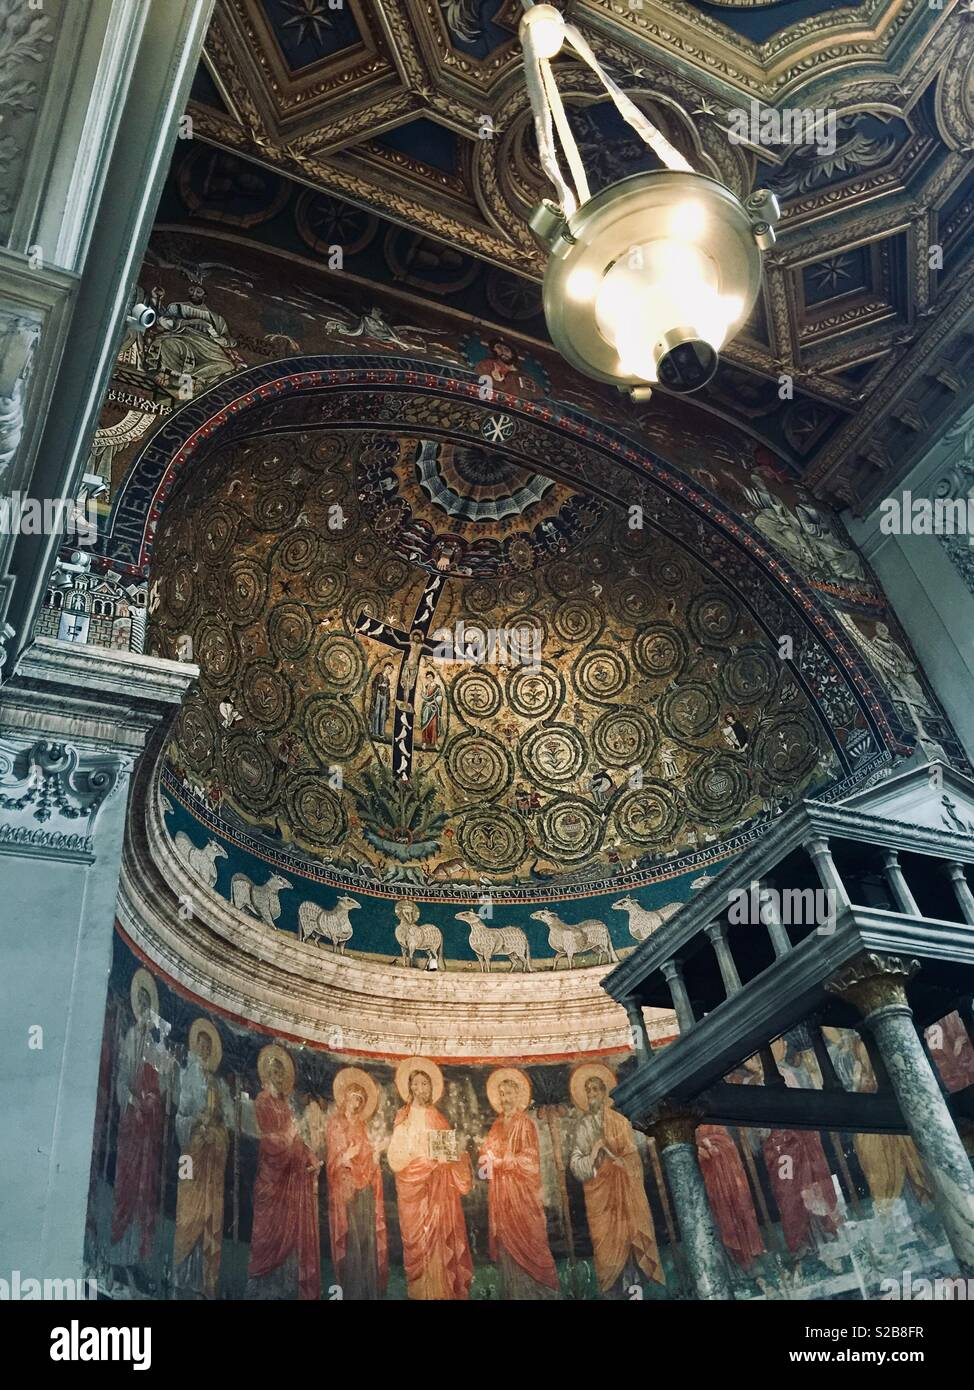 A 12th century mosaic in the apse of the San Clemente al Laterano basilica in Rome, Italy Stock Photo